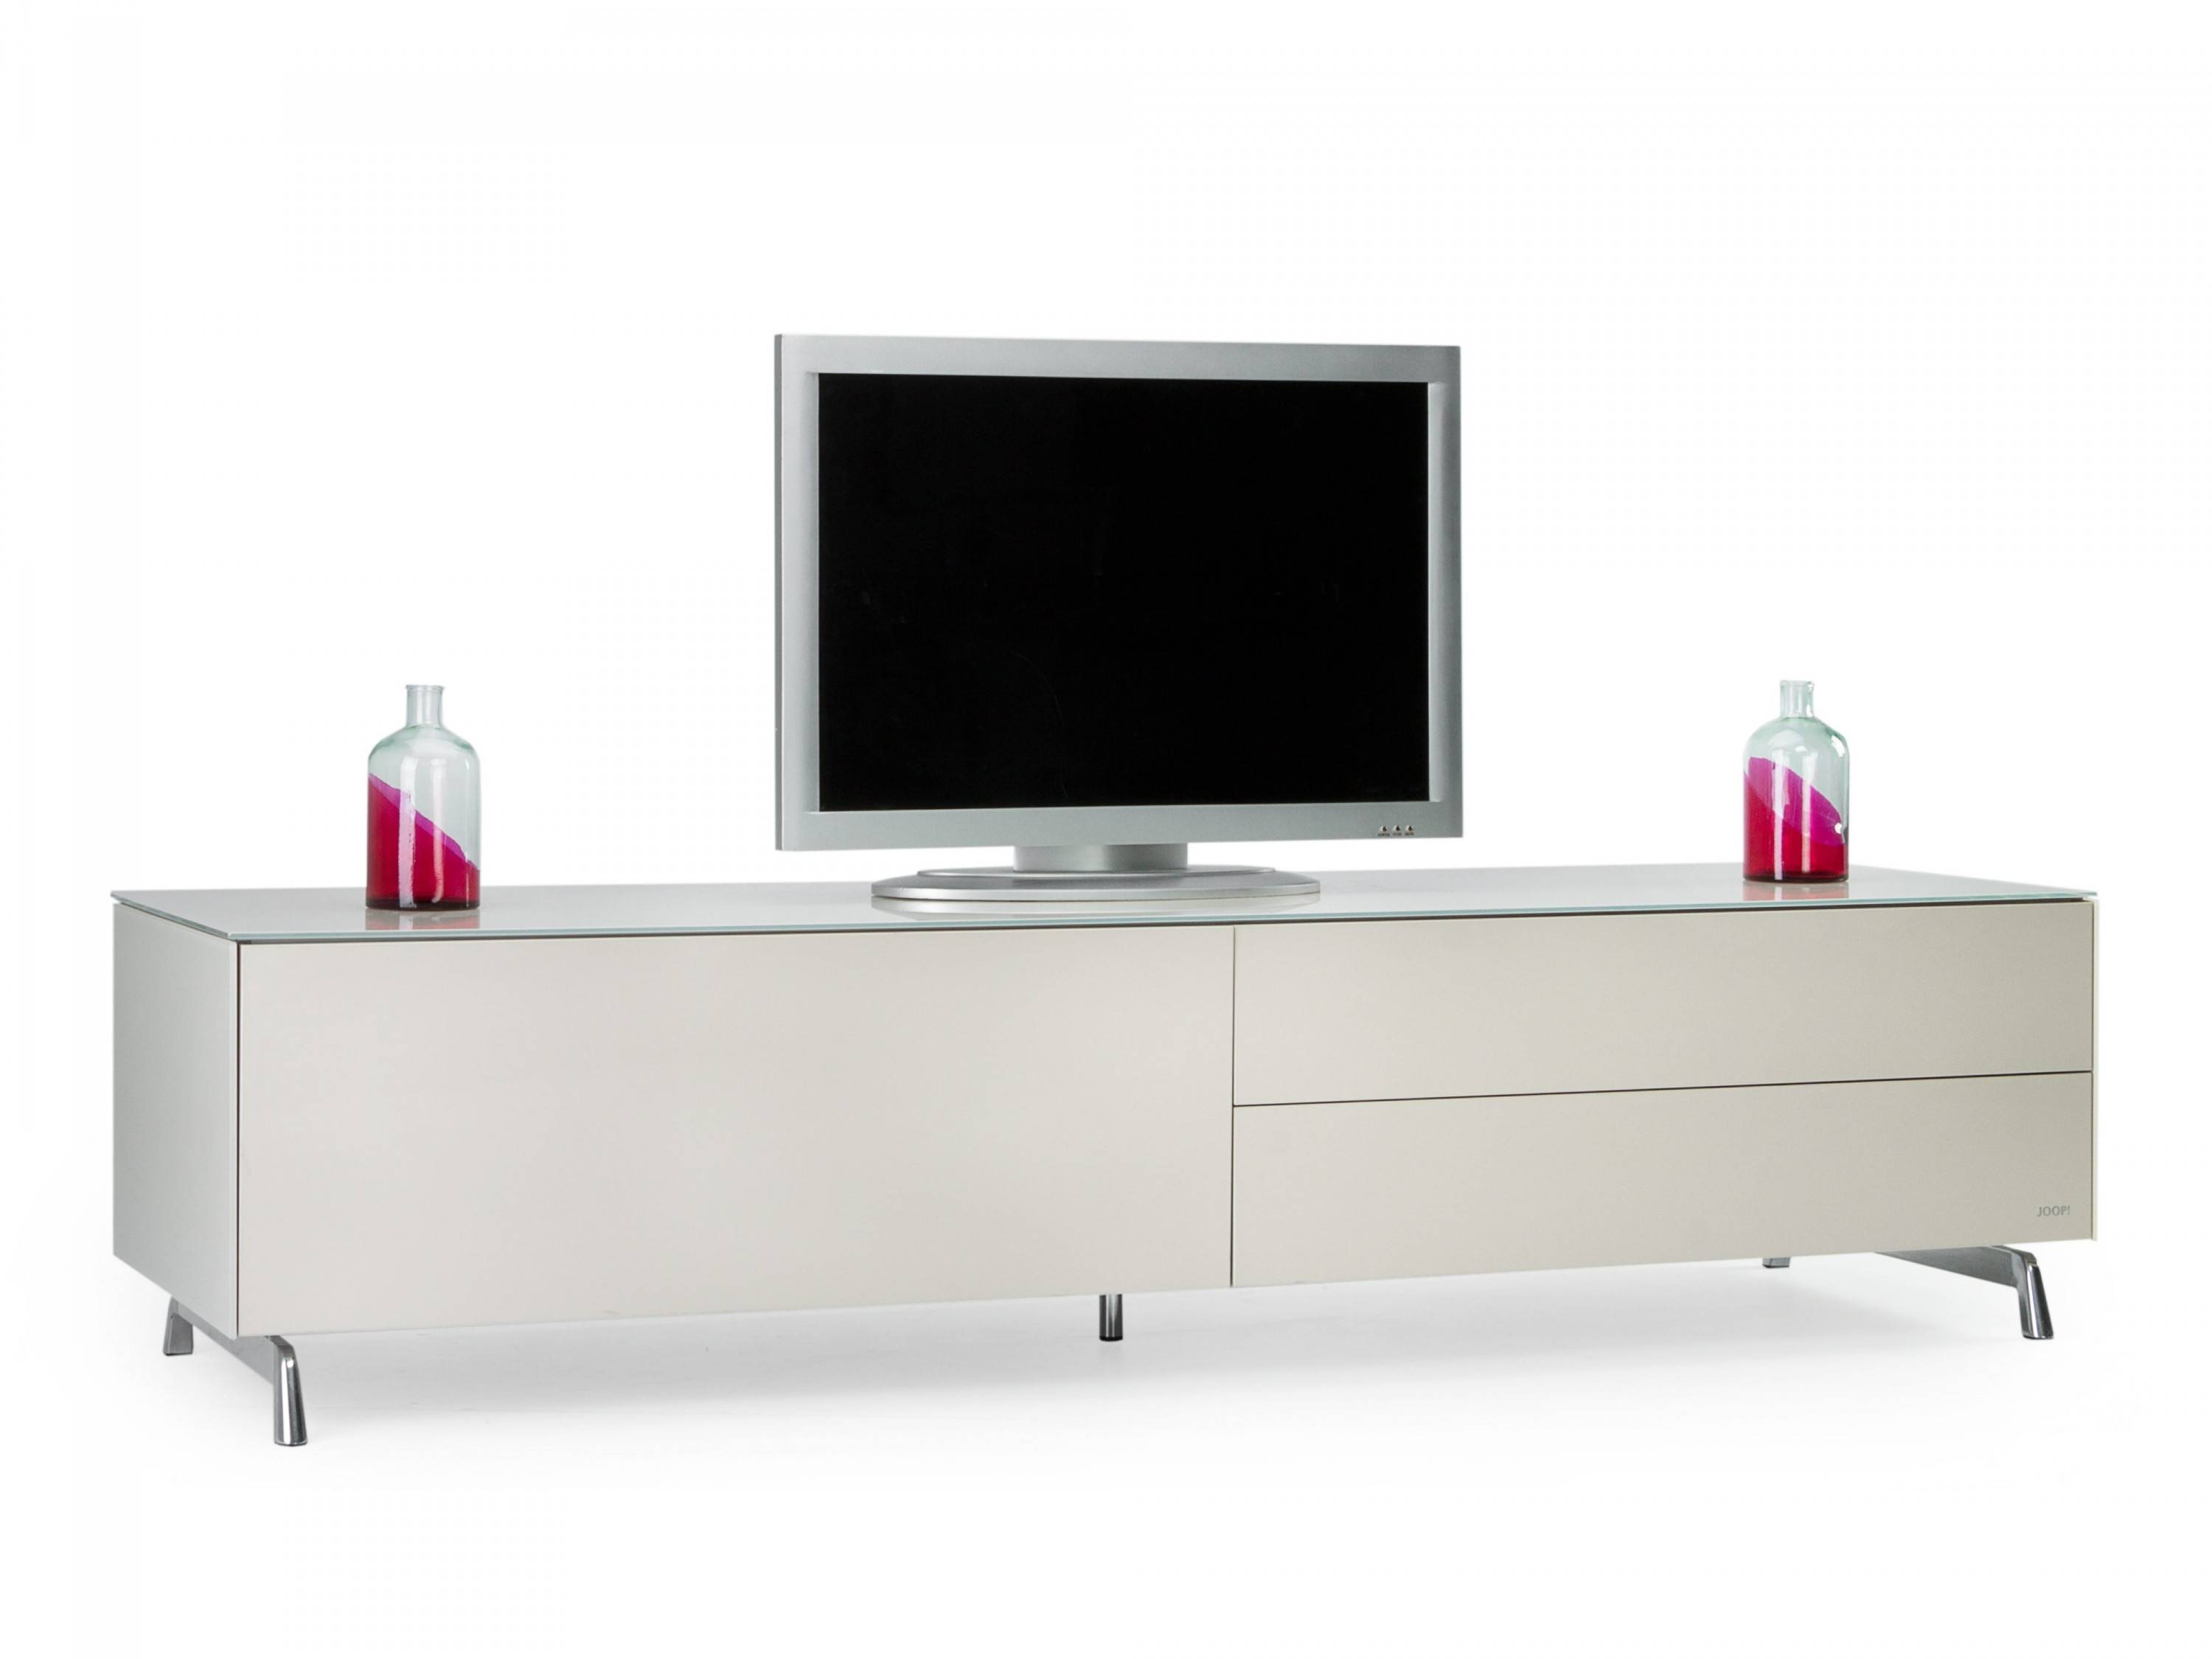 Lowboard Joop! Loft Von Joop! Und Schr?nke & Regale G?nstig Online Throughout Joop Sideboards (View 4 of 15)